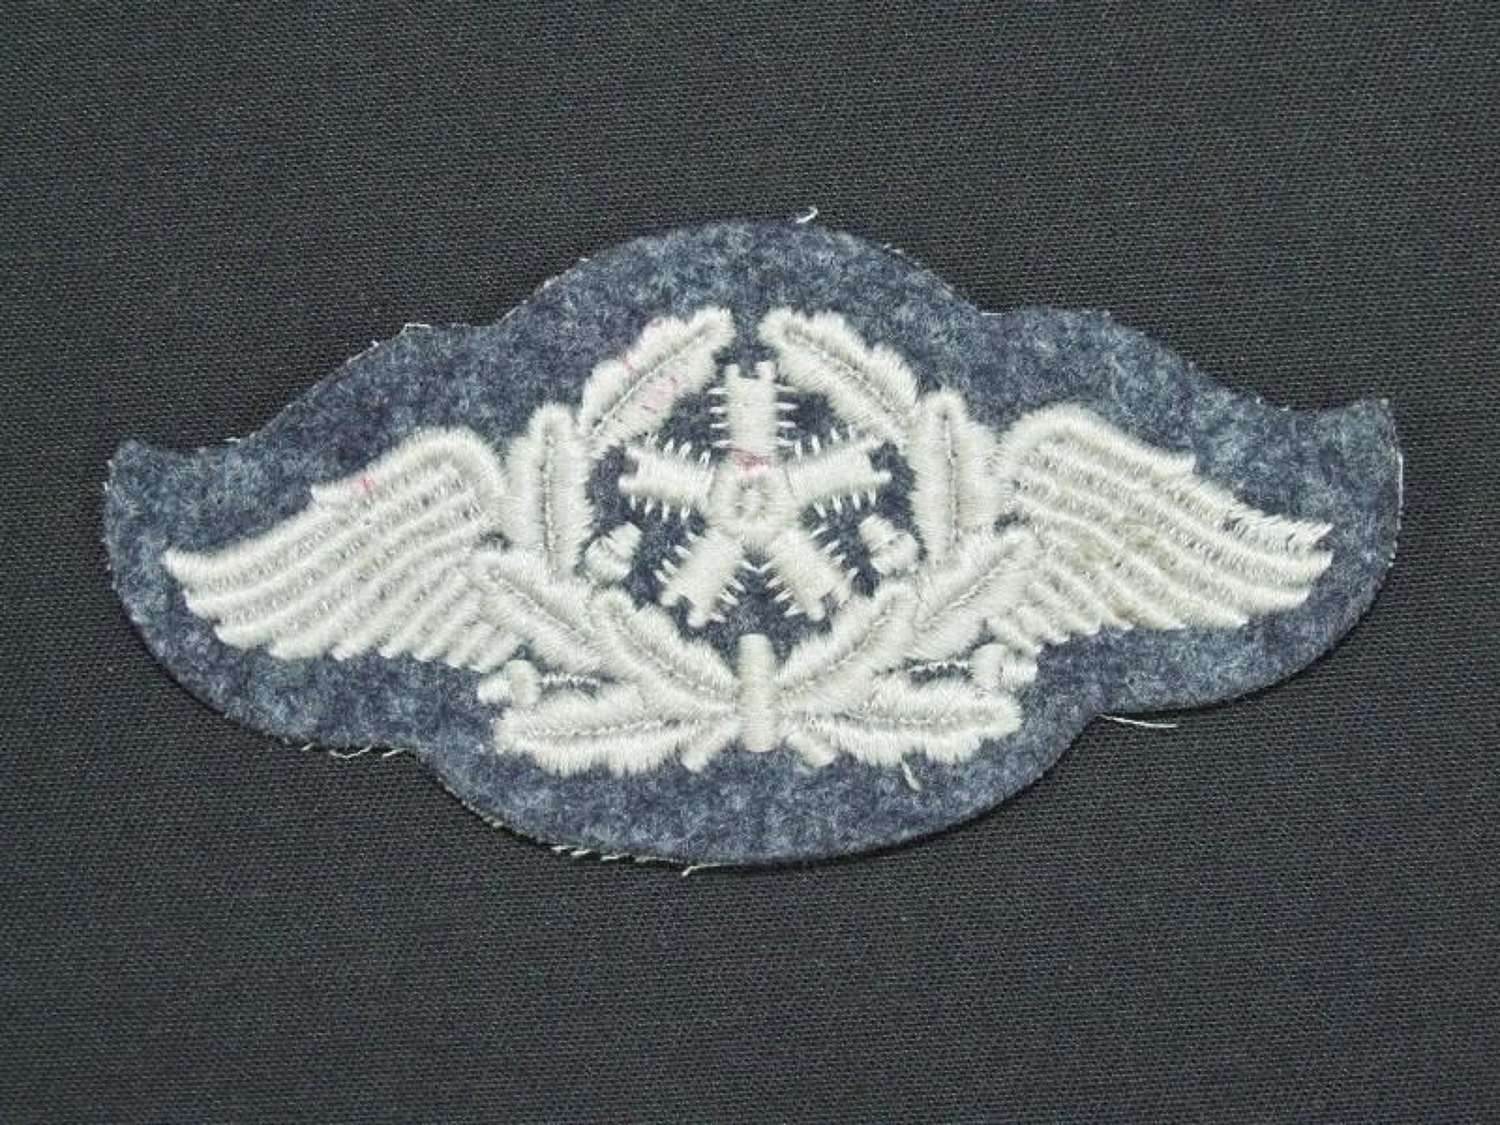 Luftwaffe Specialty Badge for Flying Technical Personnel.